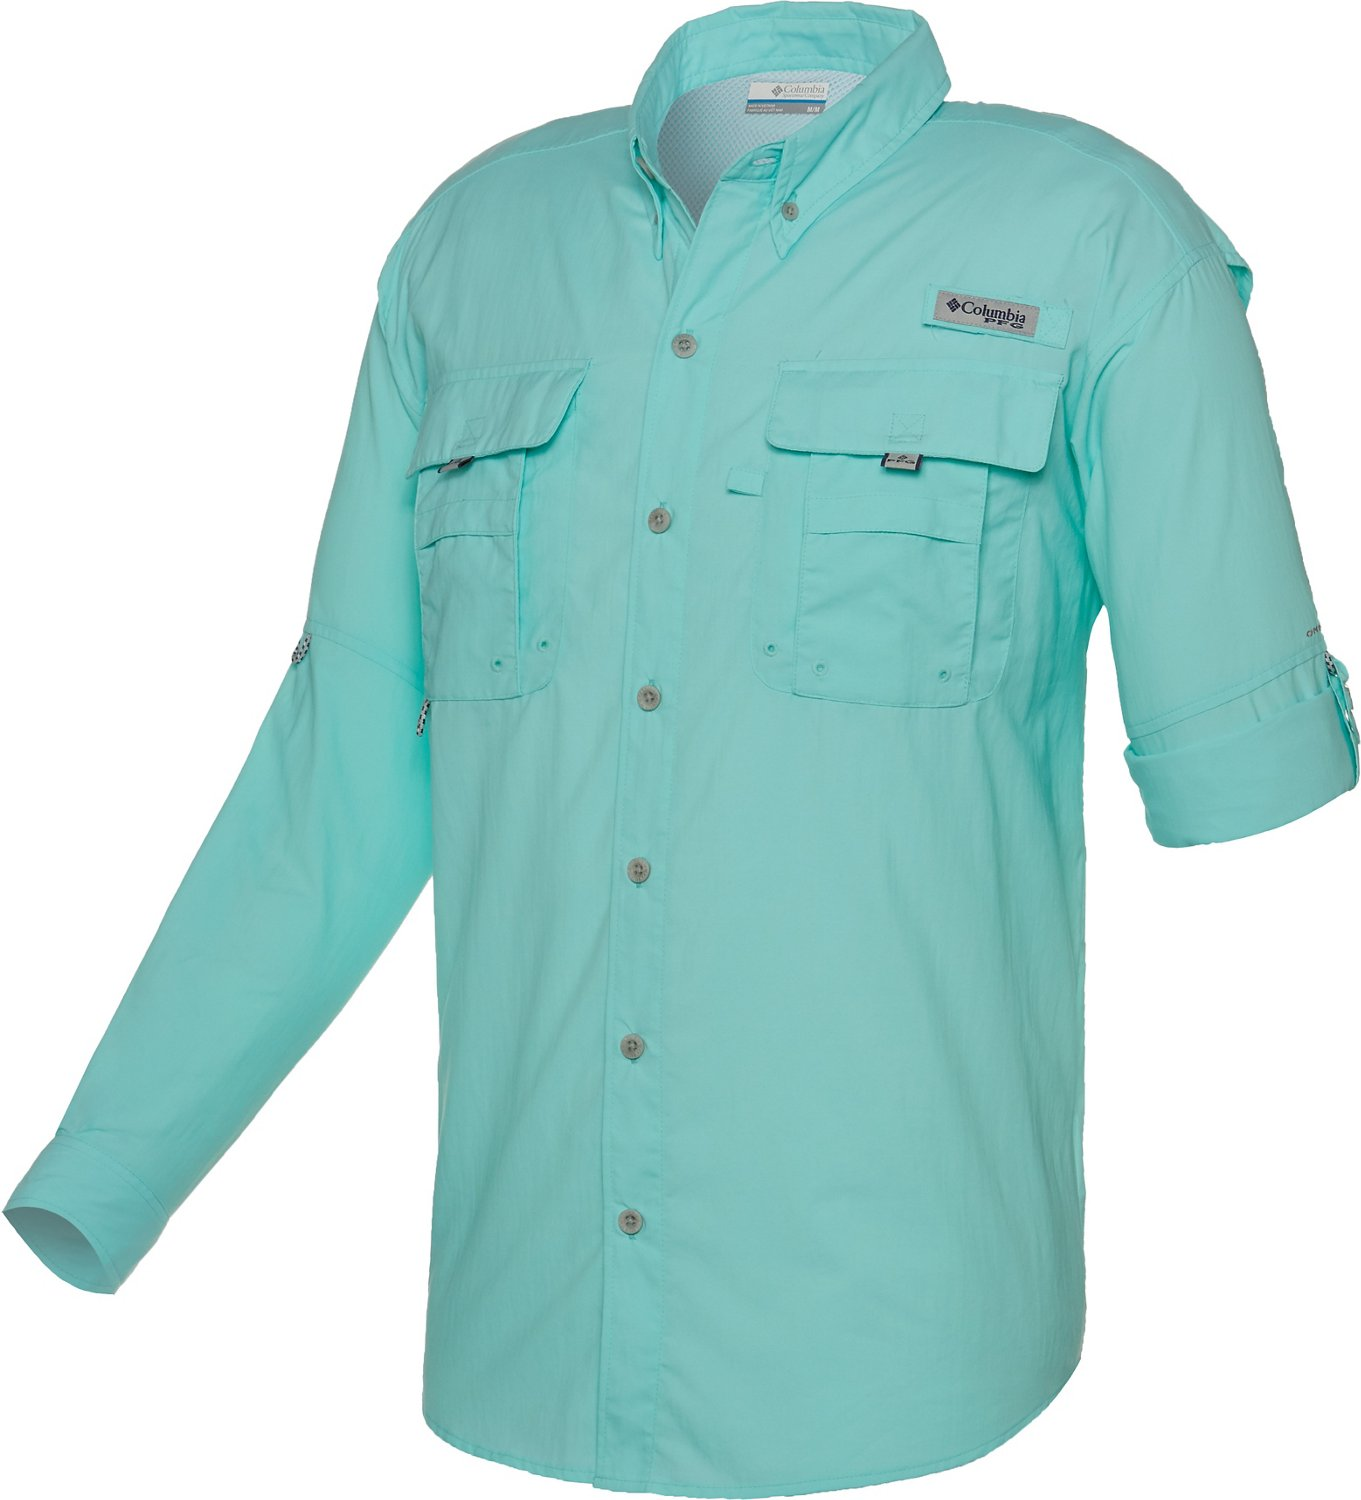 3c1e1ad71345c Display product reviews for Columbia Sportswear Men's Bahama II Shirt